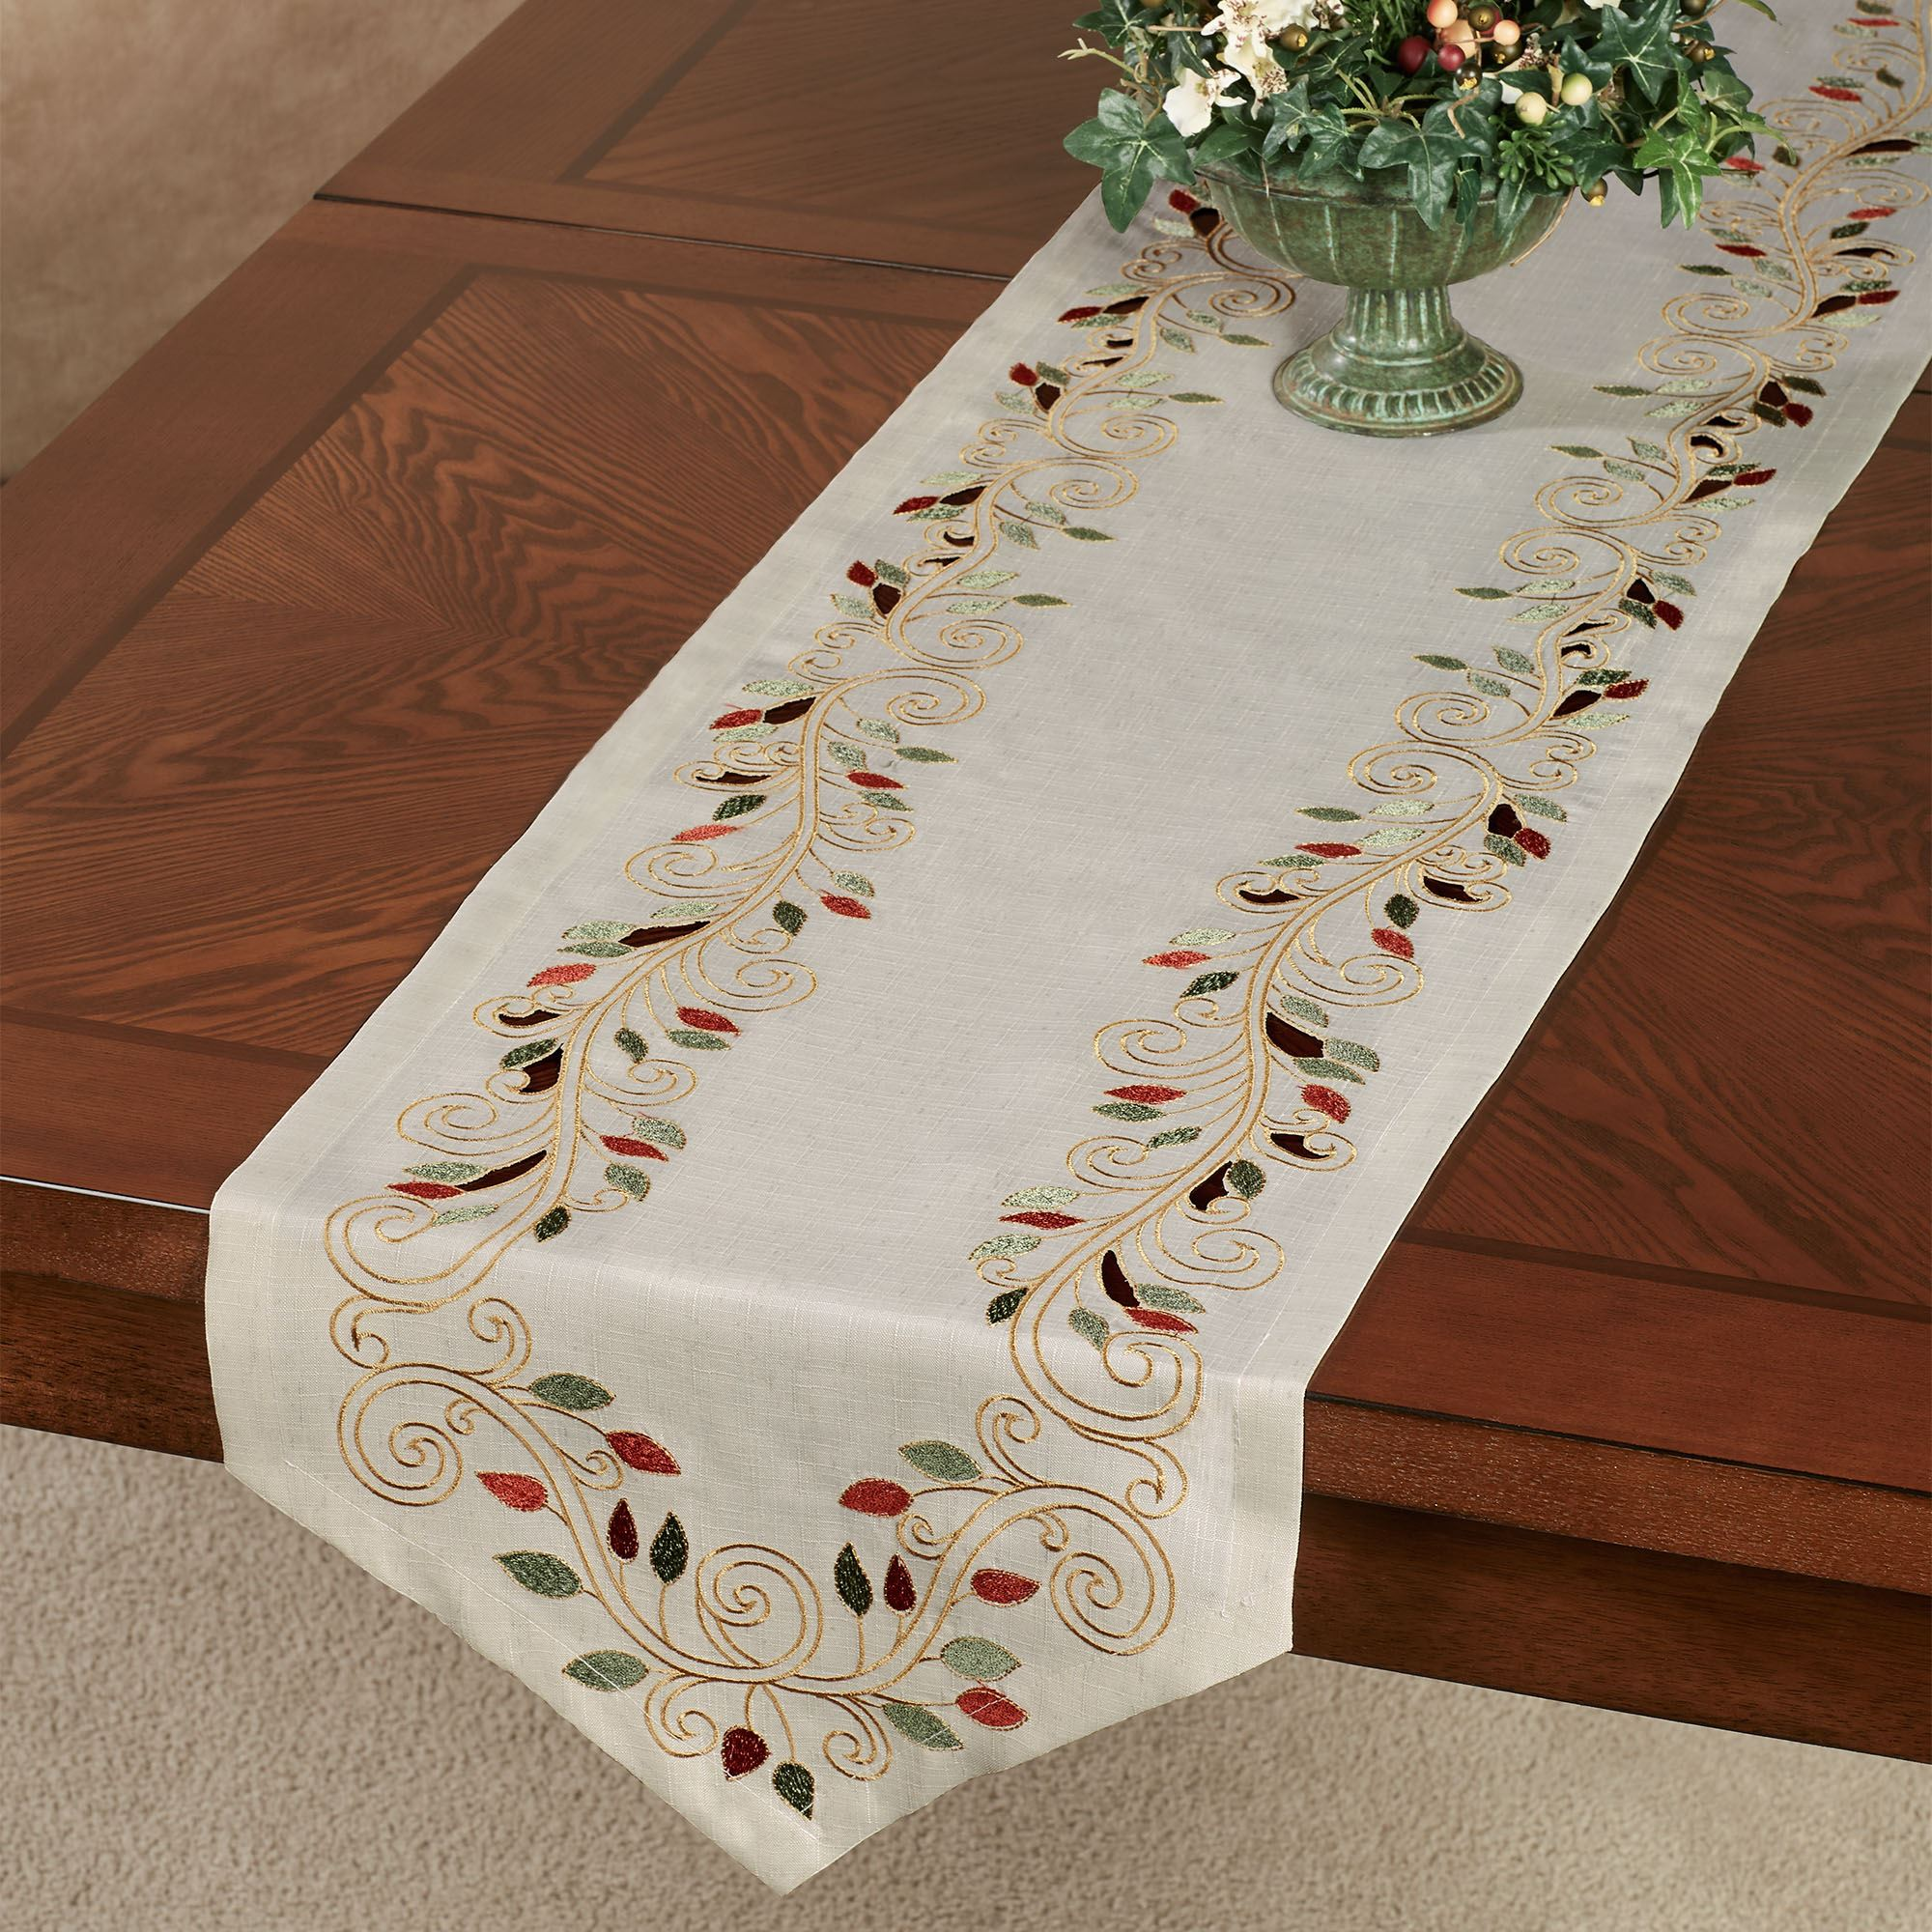 Scrolling Leaves Cutwork Embroidered Dining Table Linens